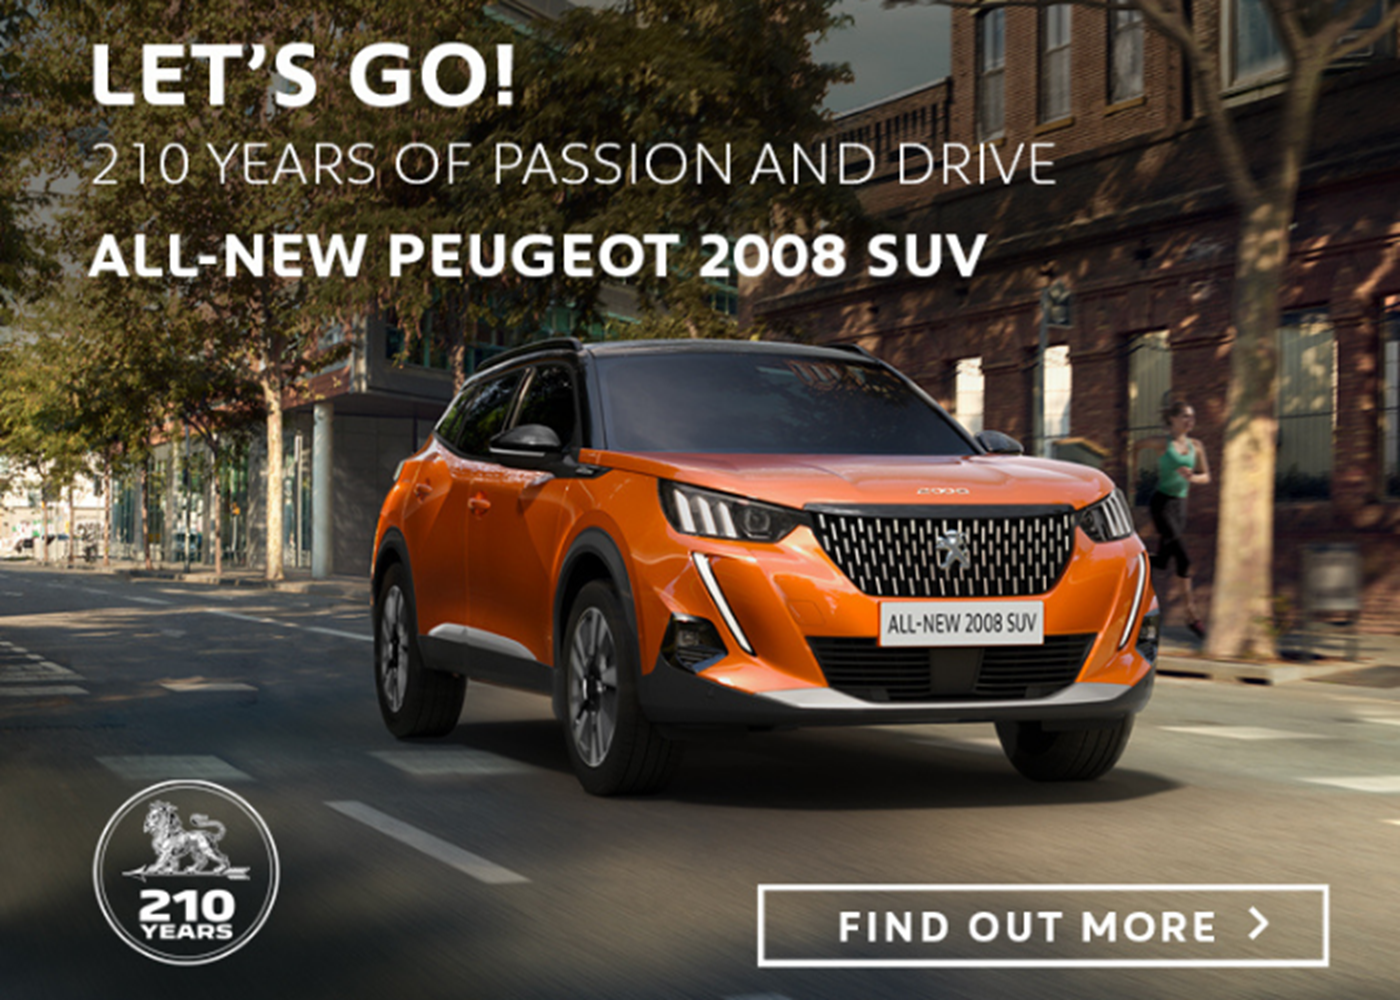 All-New Peugeot 2008 SUV at Chippenham Motor Company